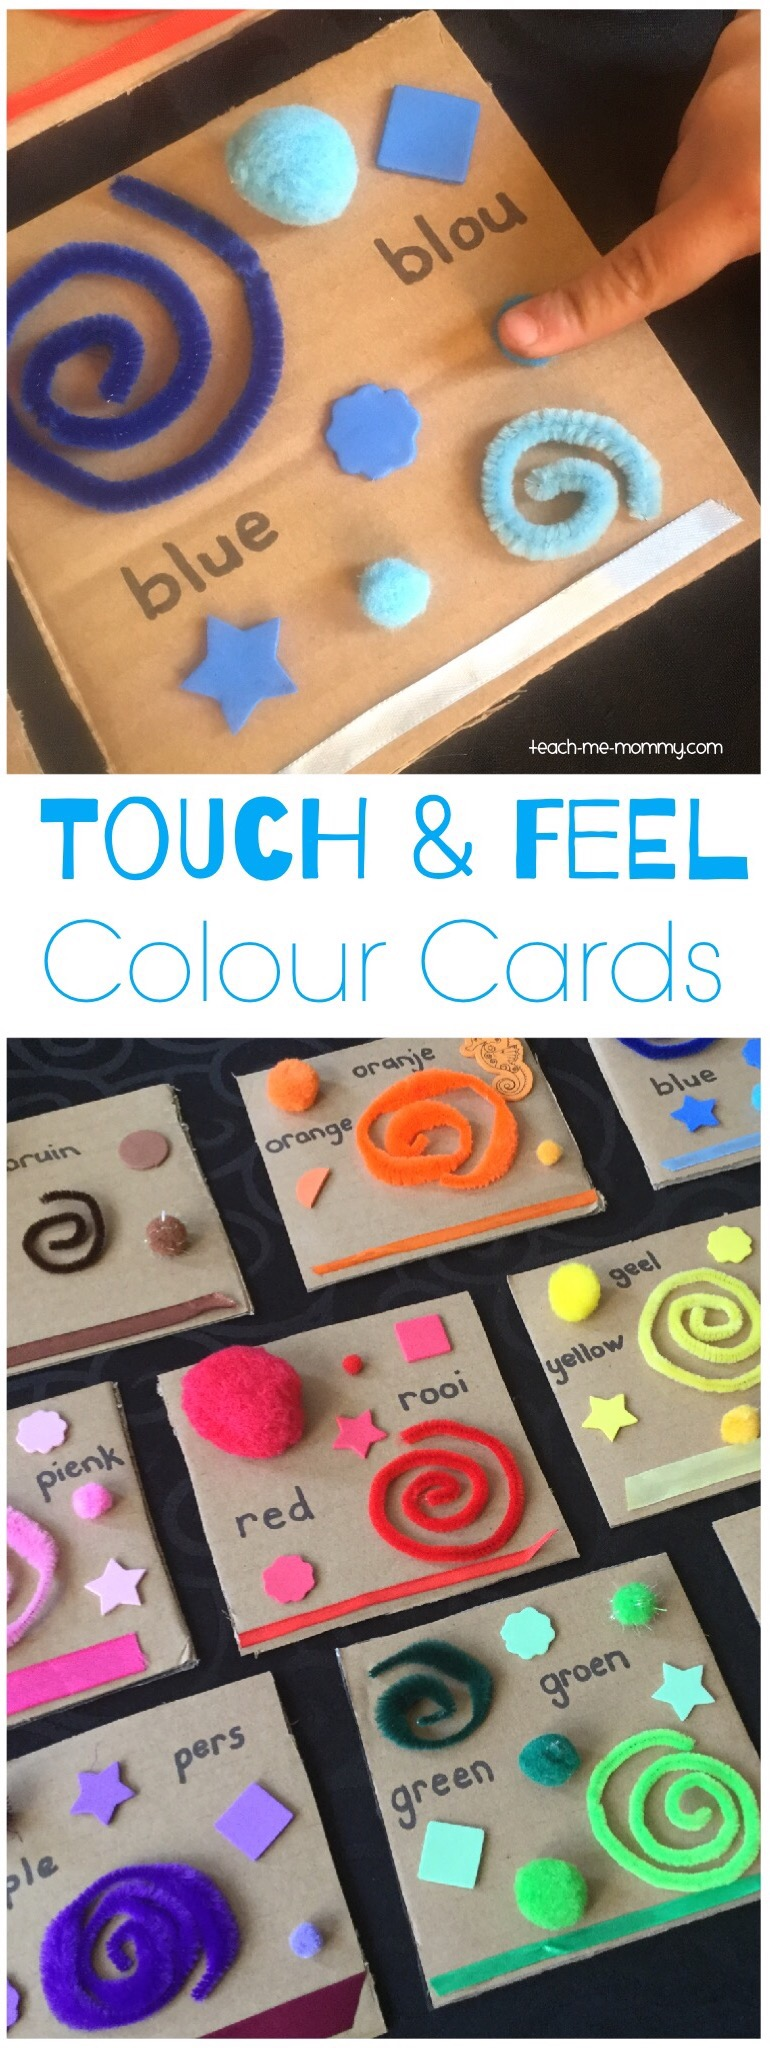 Touch & feel colours